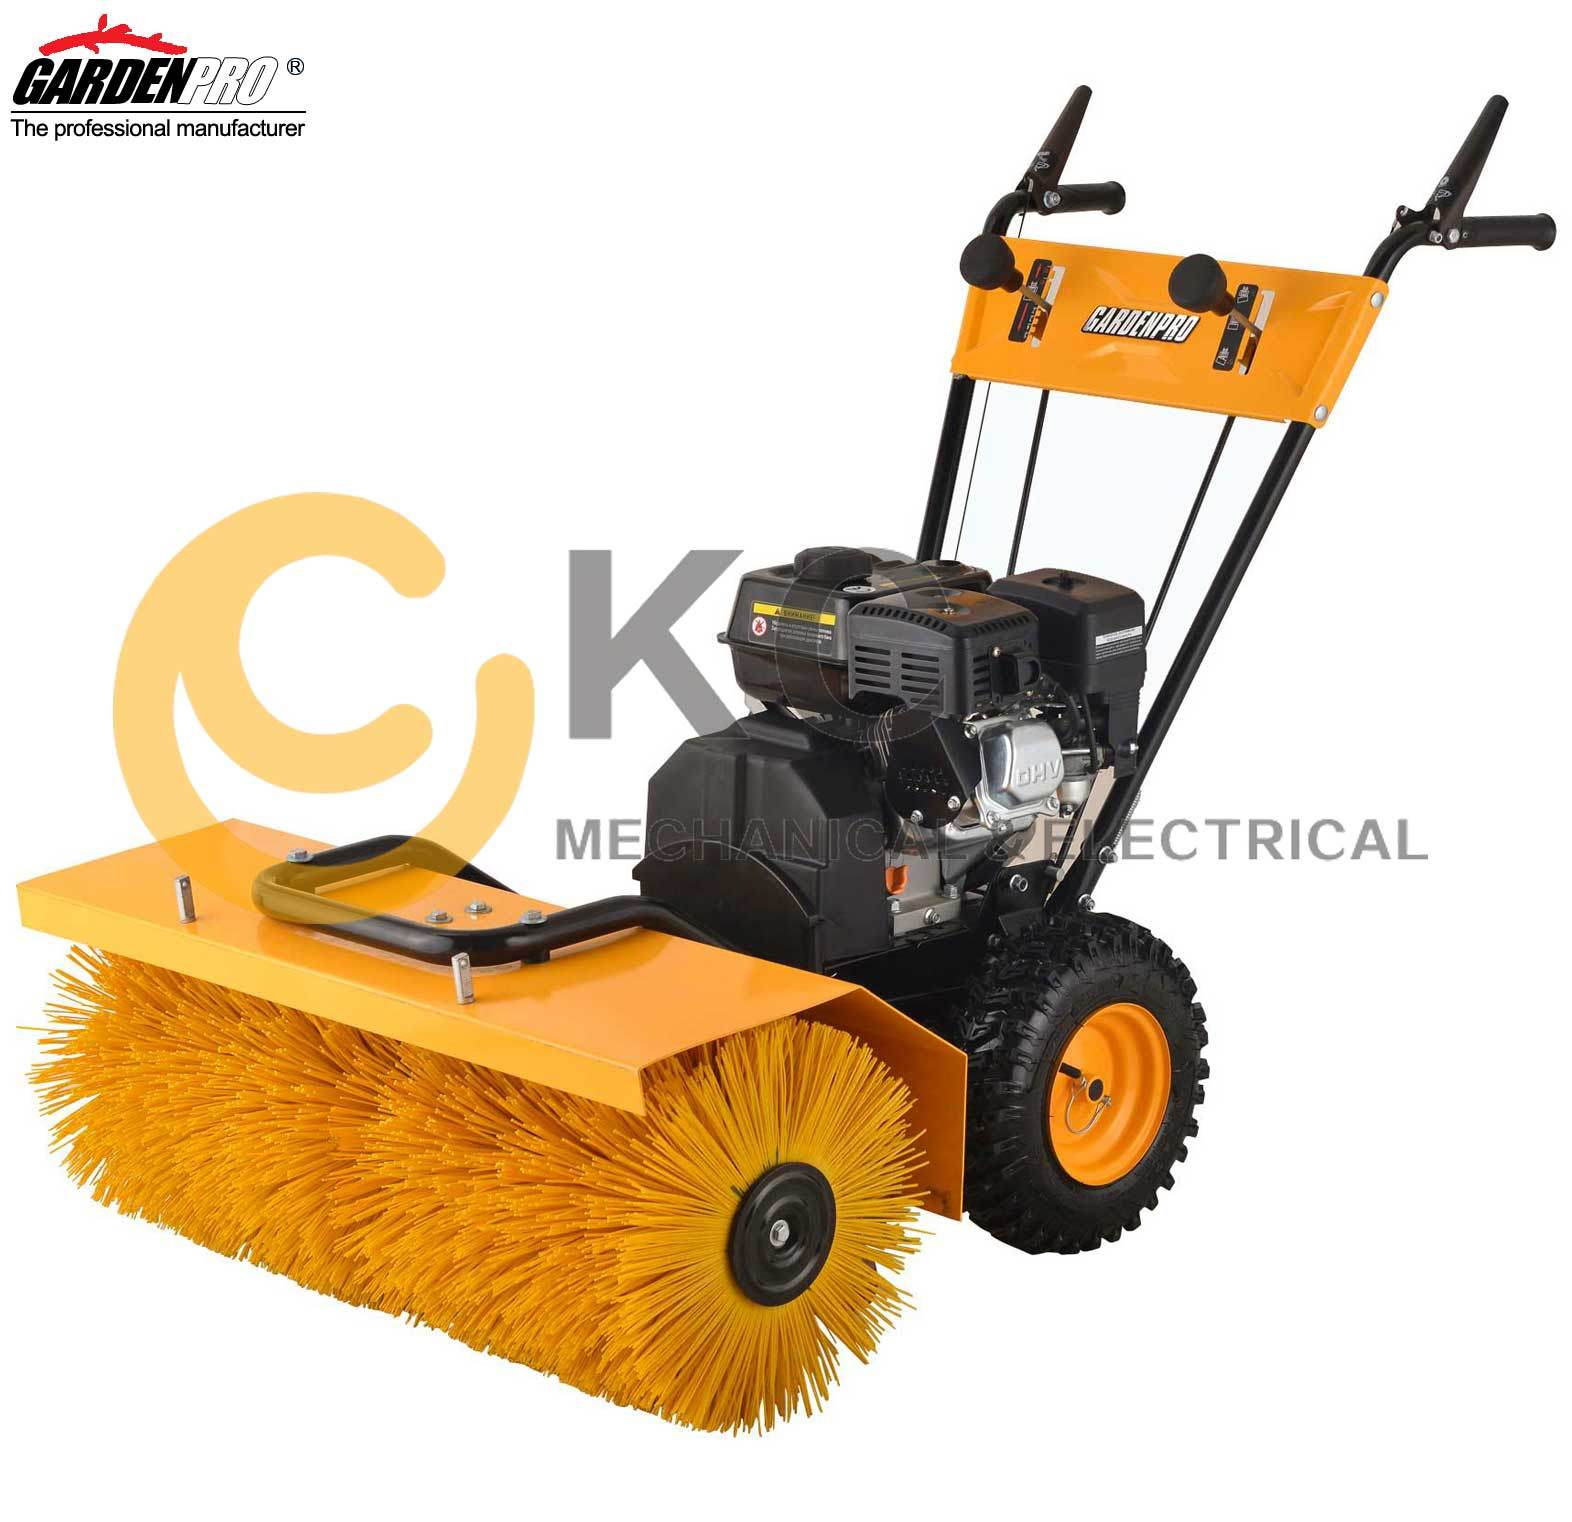 Gasoline Cleaner with CE&GS Certified